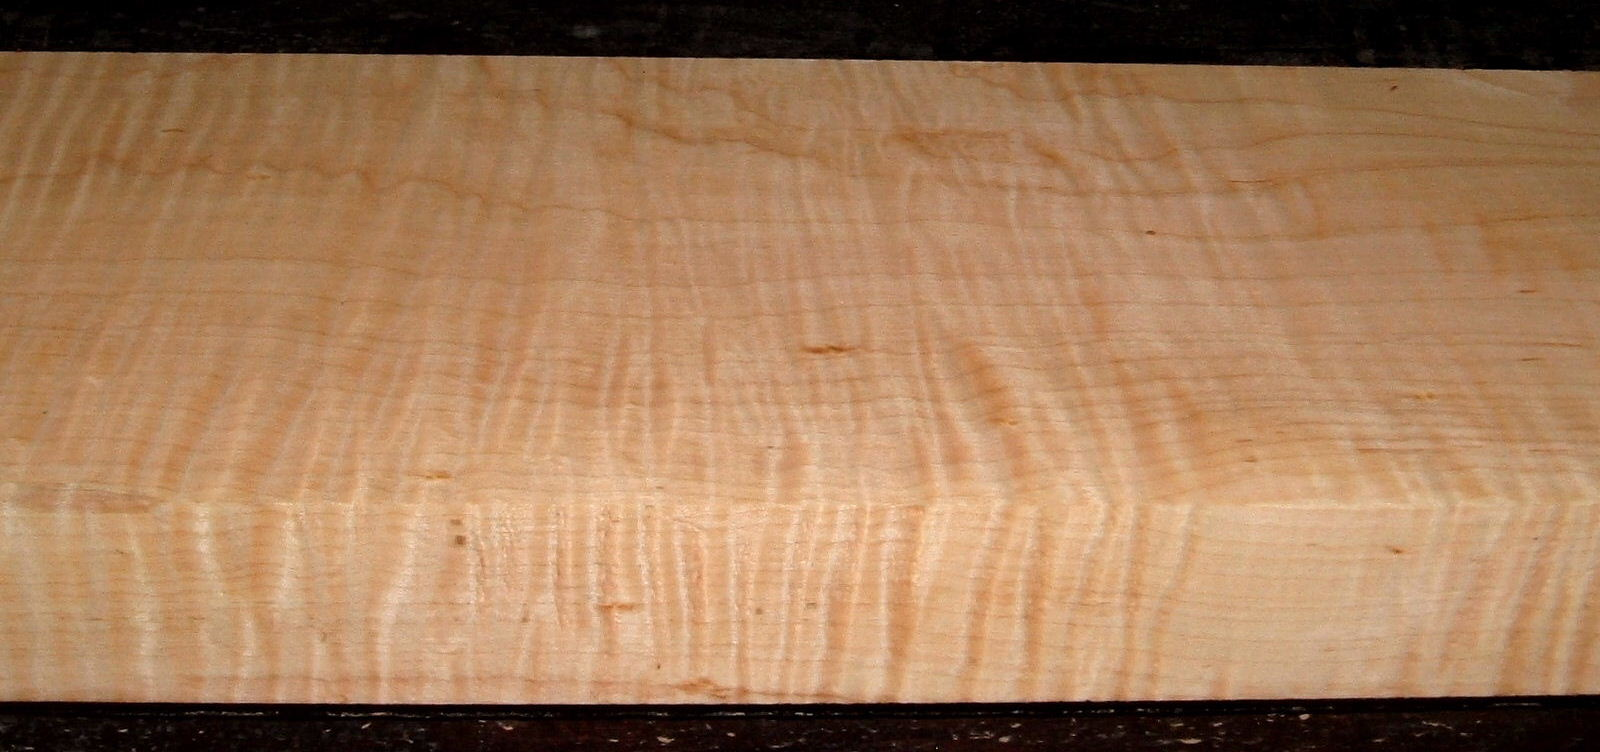 M2103-191, 1-15/16x6-1/2x44, Curly Tiger Maple